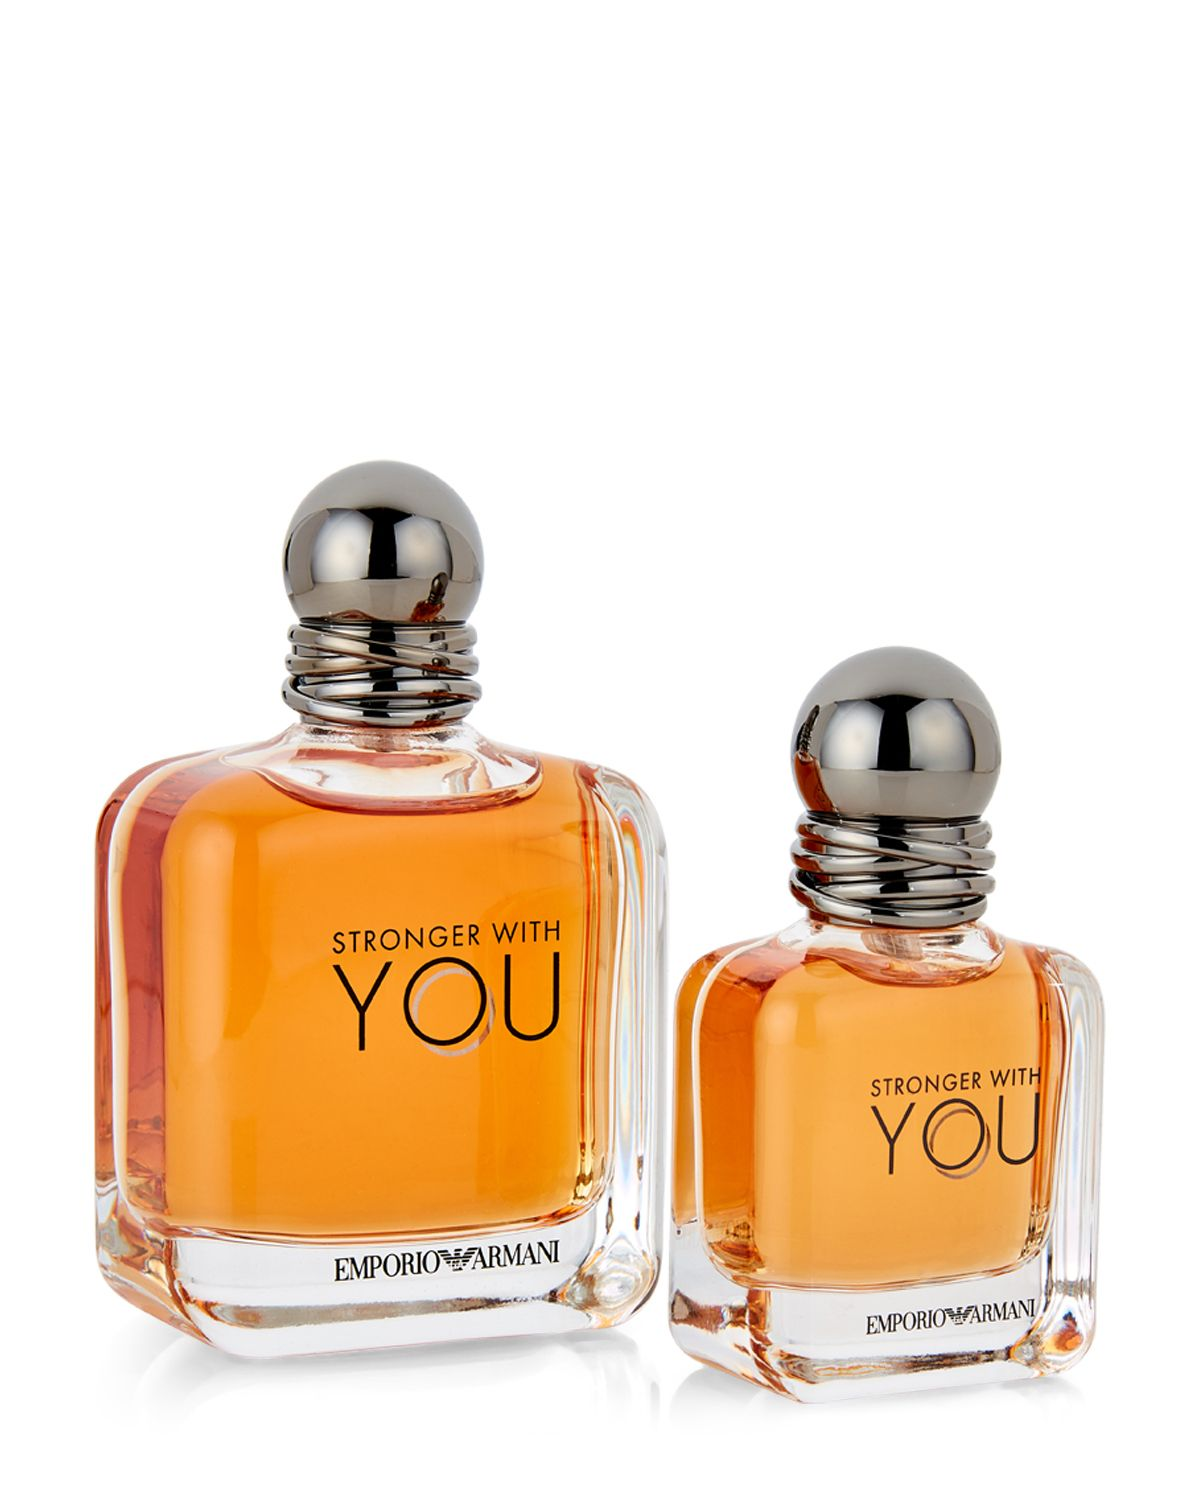 ff06c95522 Emporio Armani Stronger With You Two-Piece Fragrance Gift Set in ...